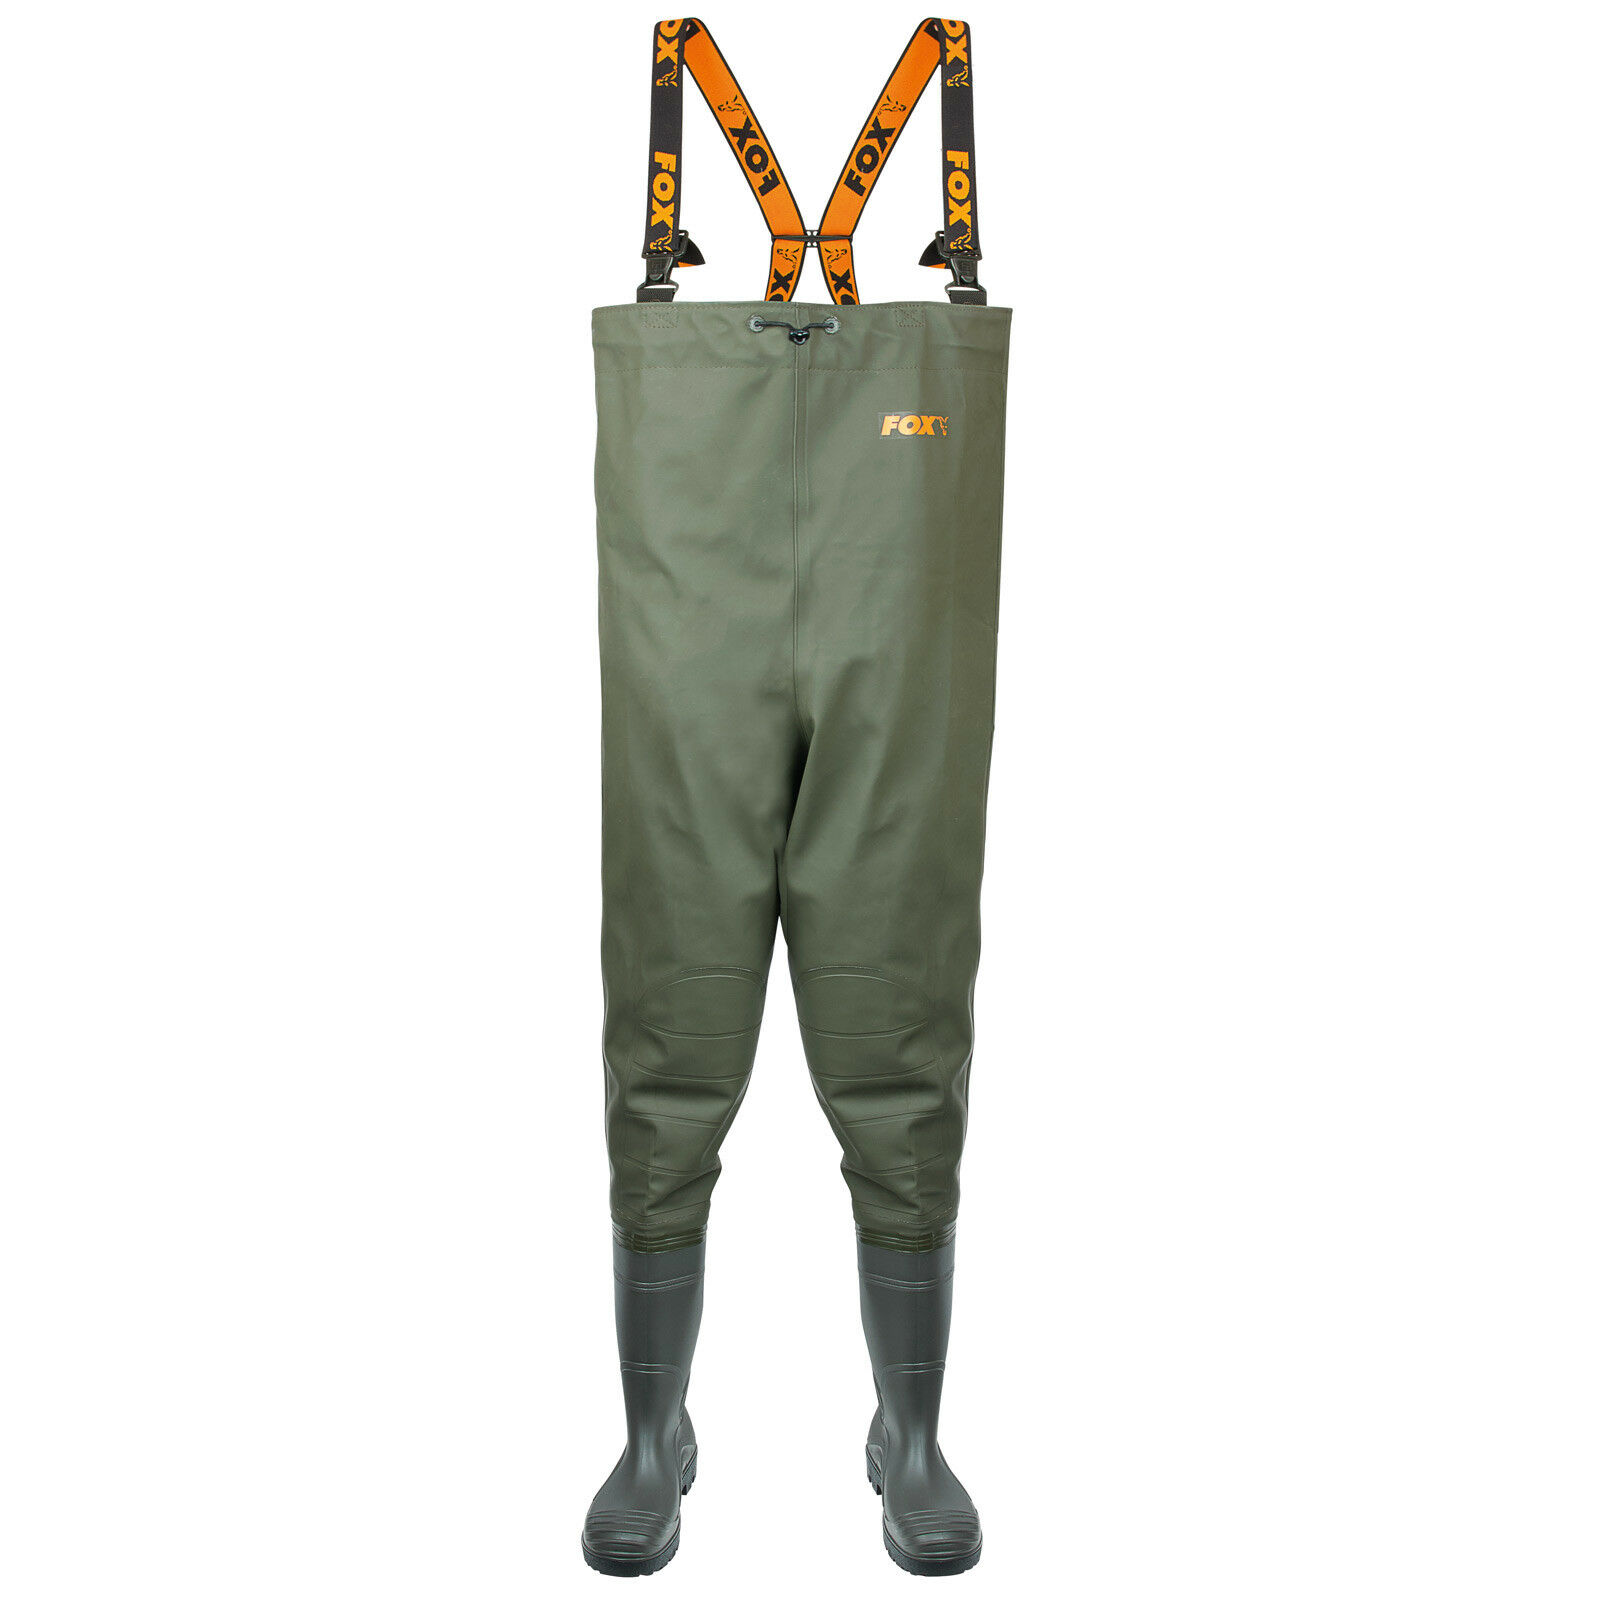 Fox Fox Fox Impermeabili chest WADERS size 10/44 a7fc61